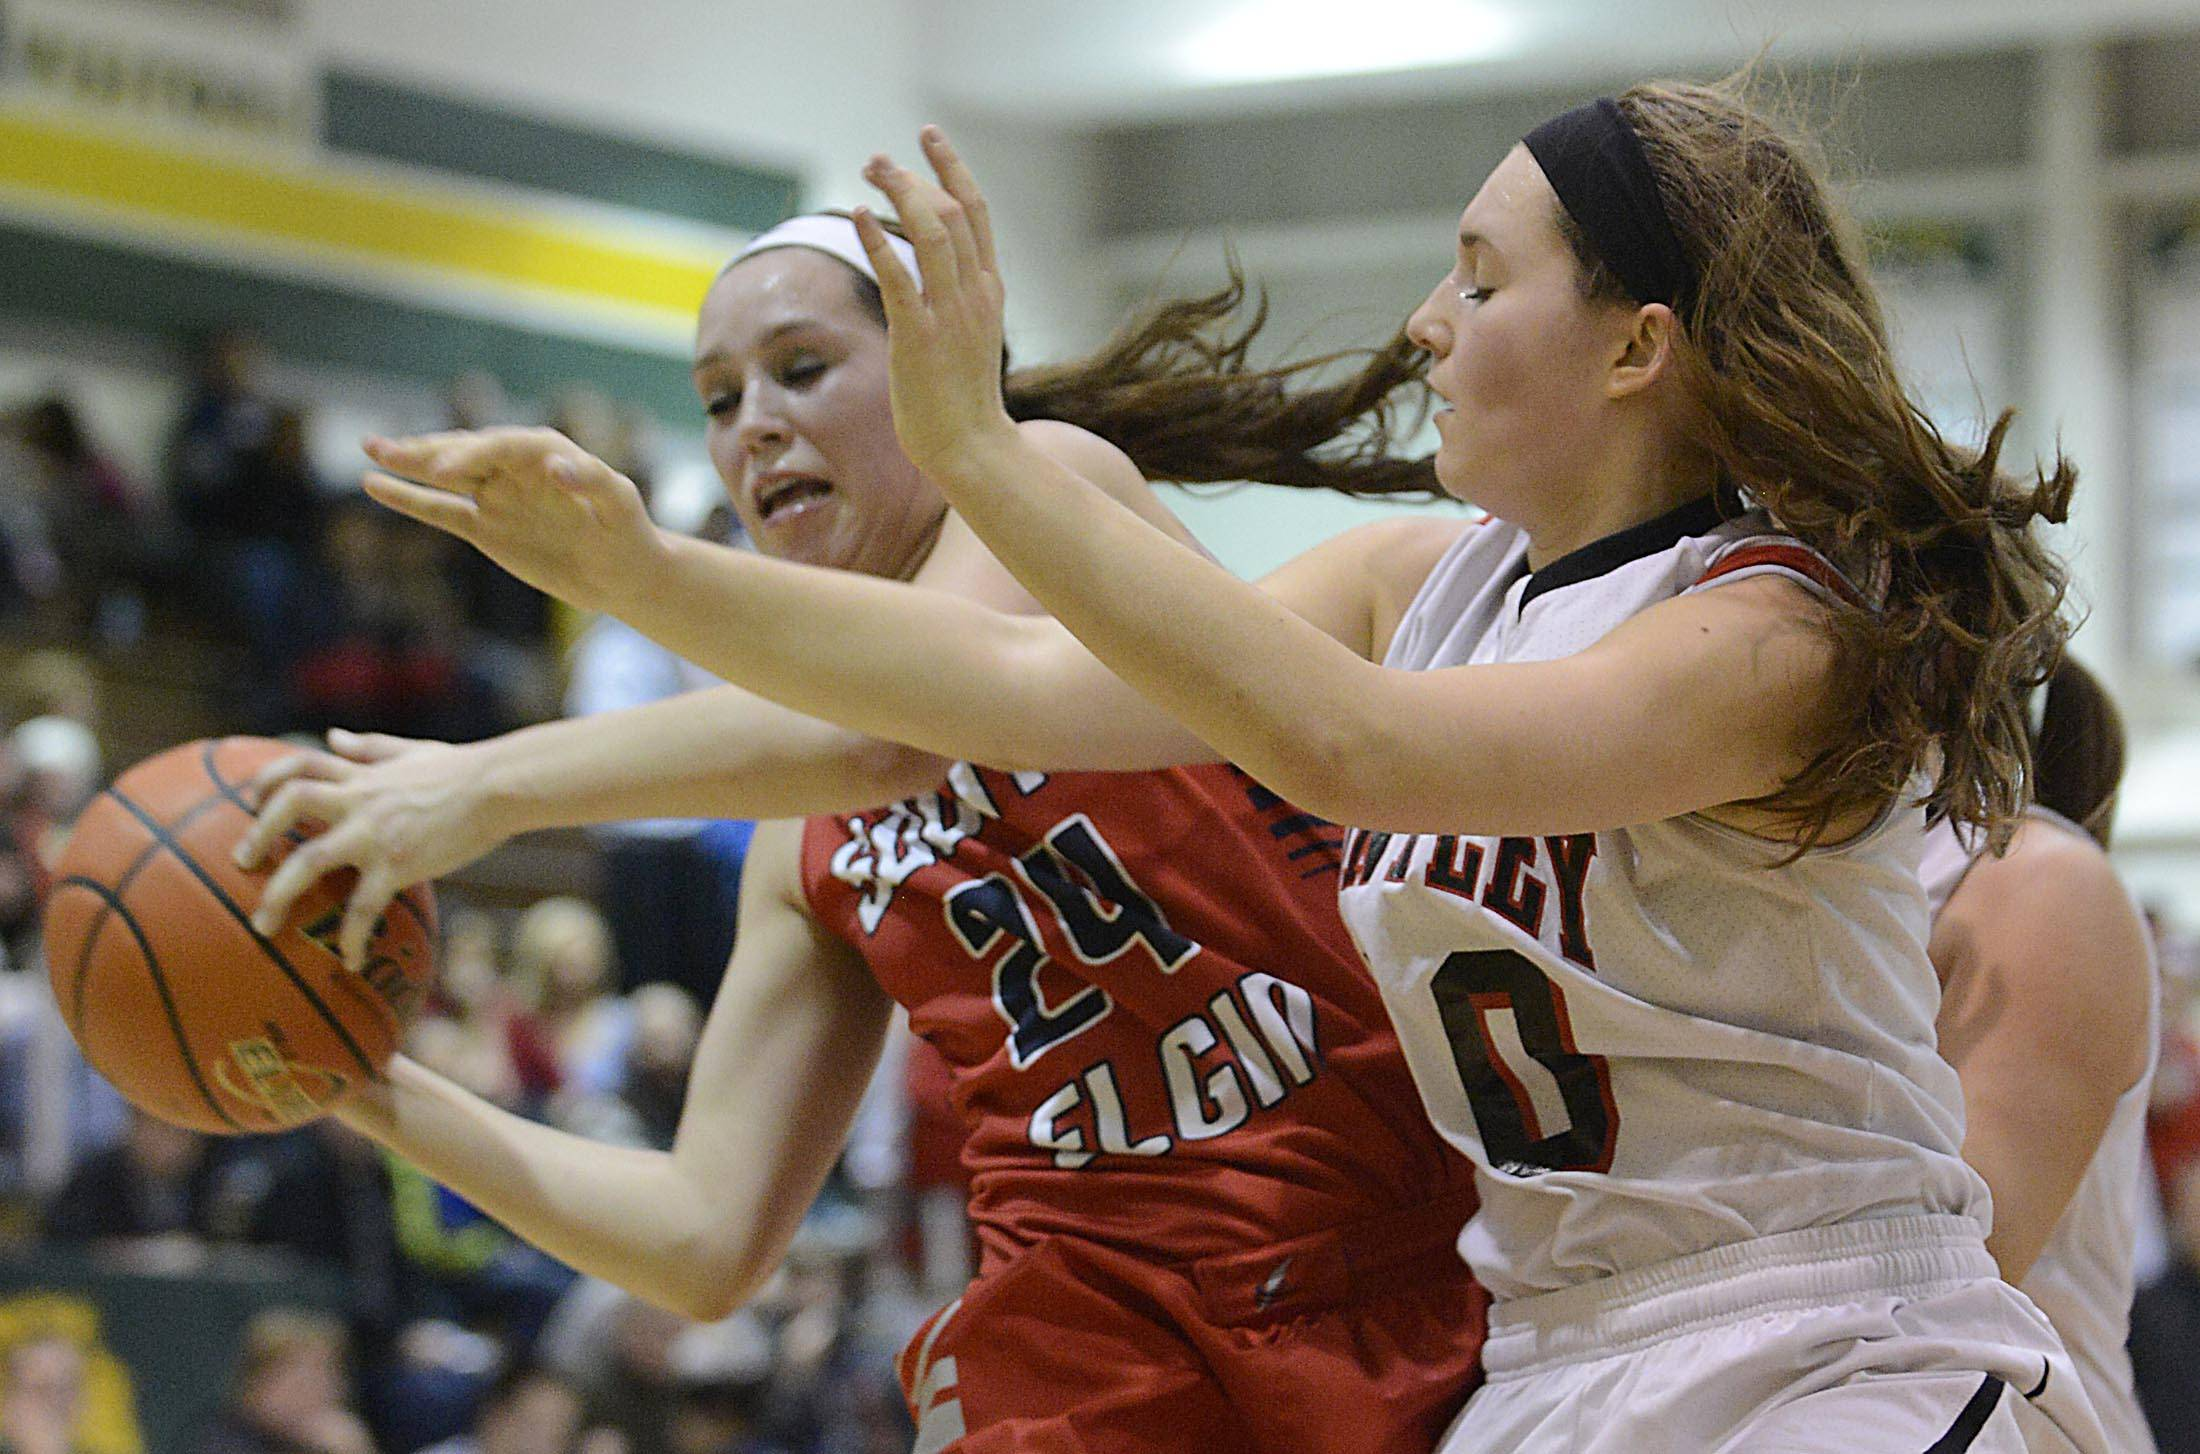 Huntley's Sam Andrews, right, battles with South Elgin's Kennede Miller for control of the ball Tuesday night during the Class 4A Crystal Lake South sectional semifinals.